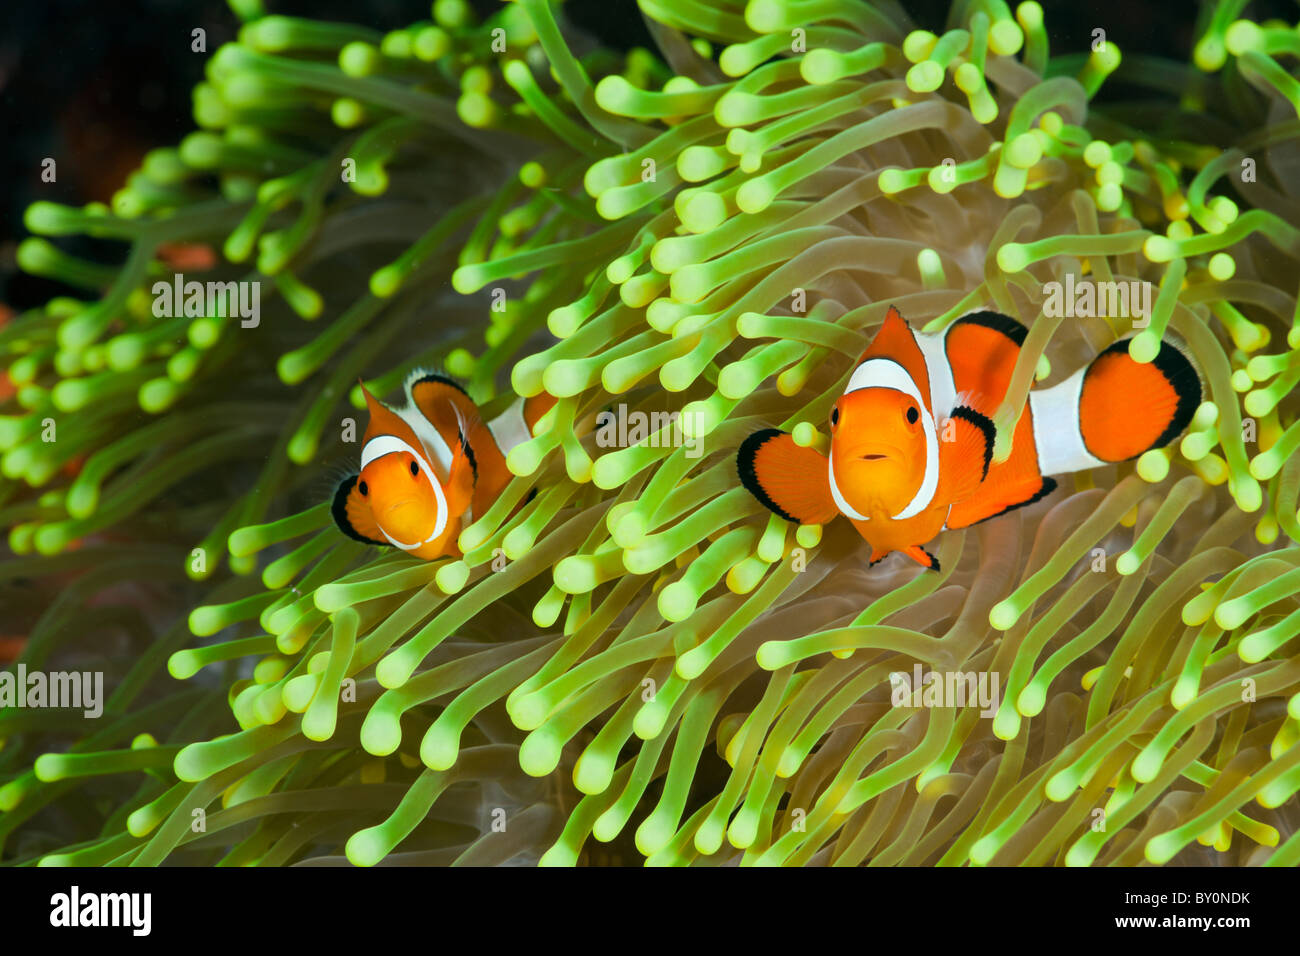 Clown Anemonefish, Amphiprion percula, Alam Batu, Bali, Indonesia - Stock Image